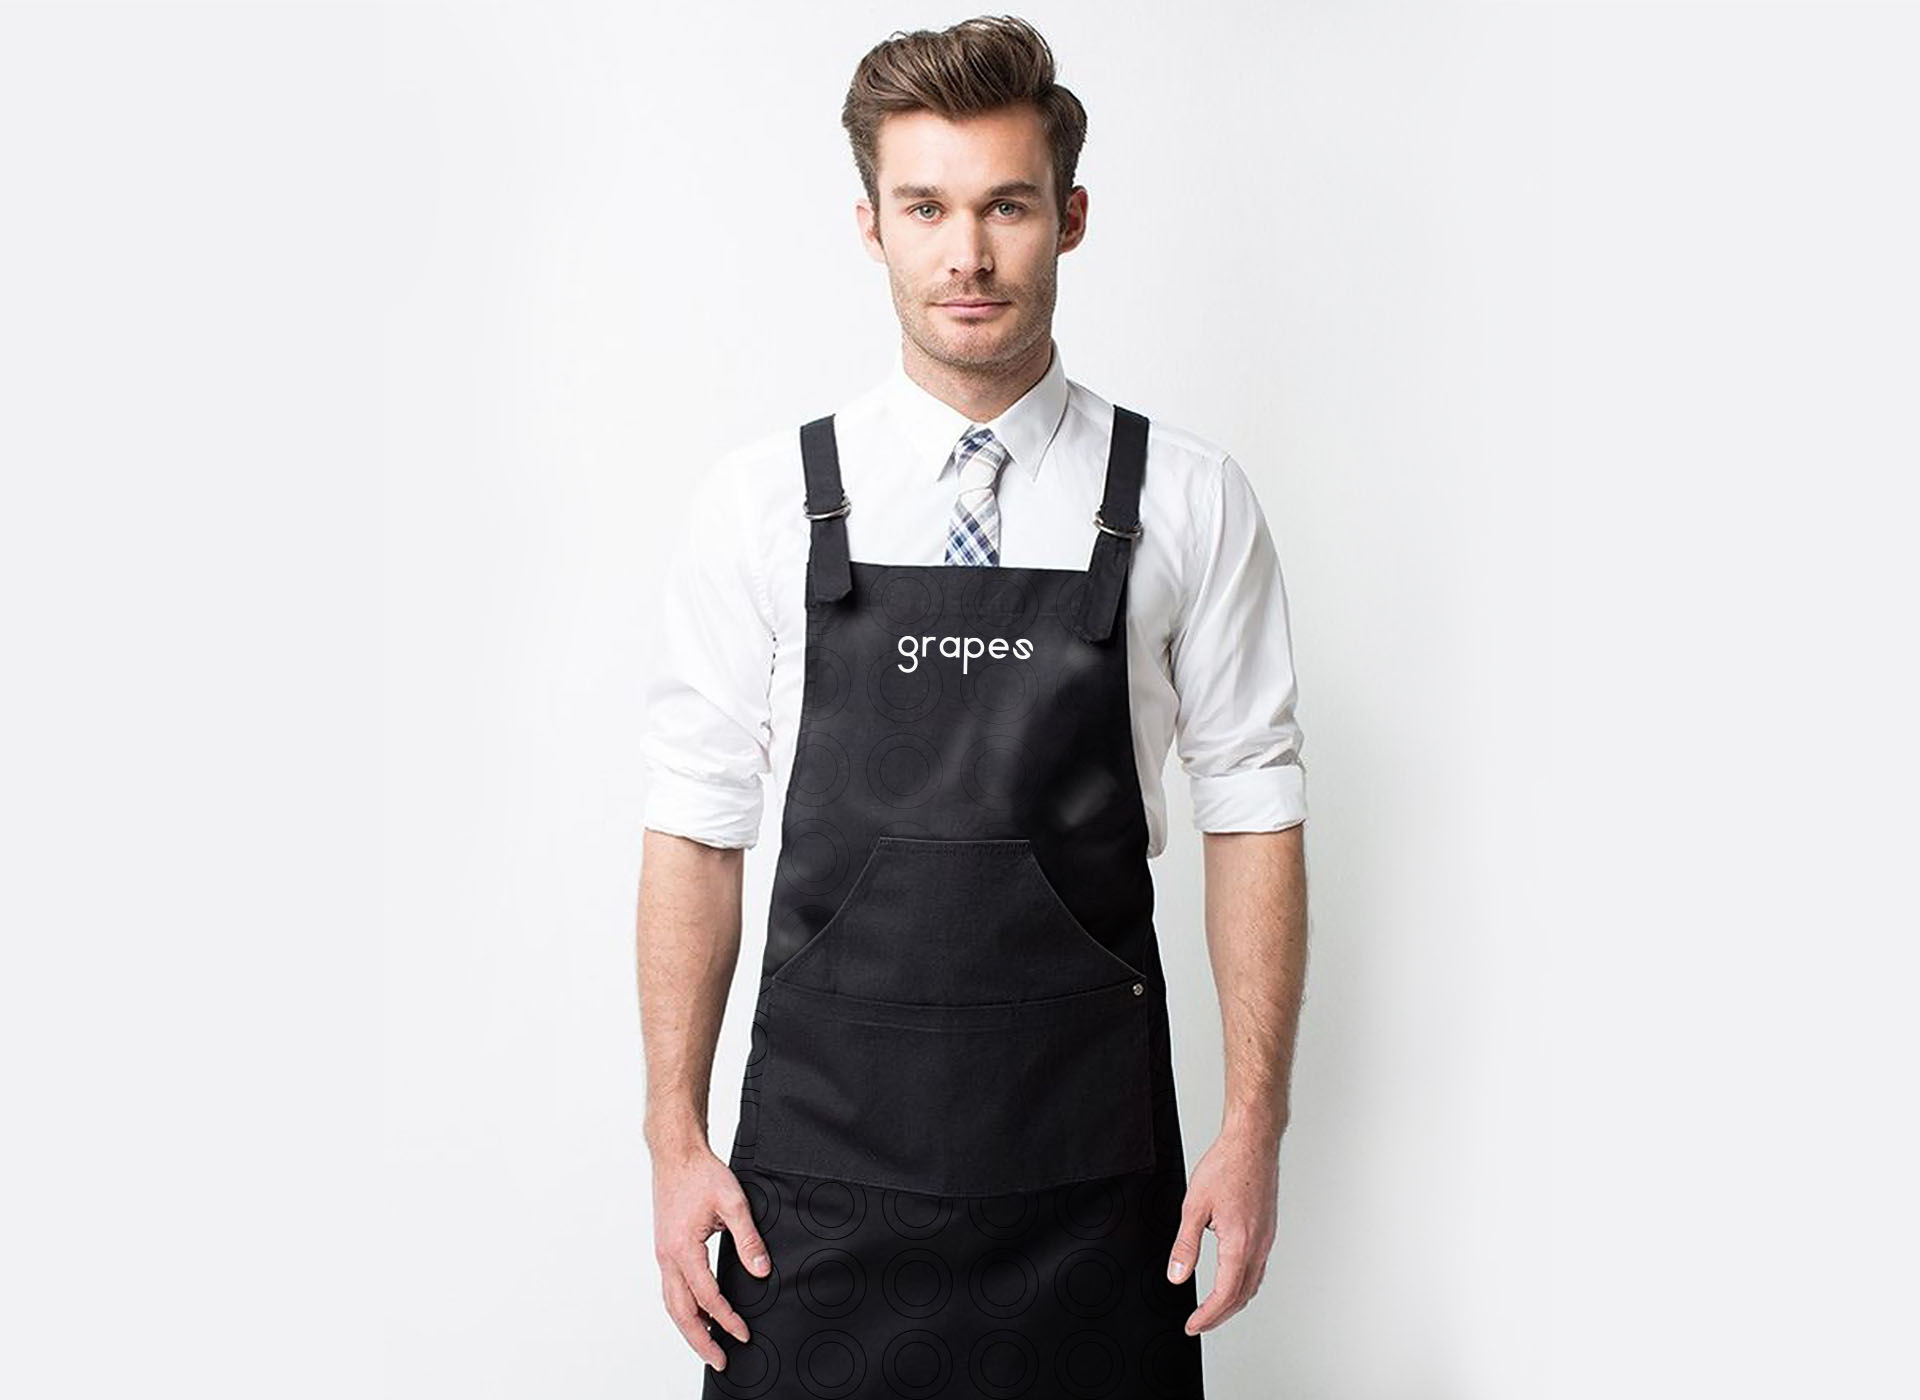 Grapes wine bar portfolio inoveo apron